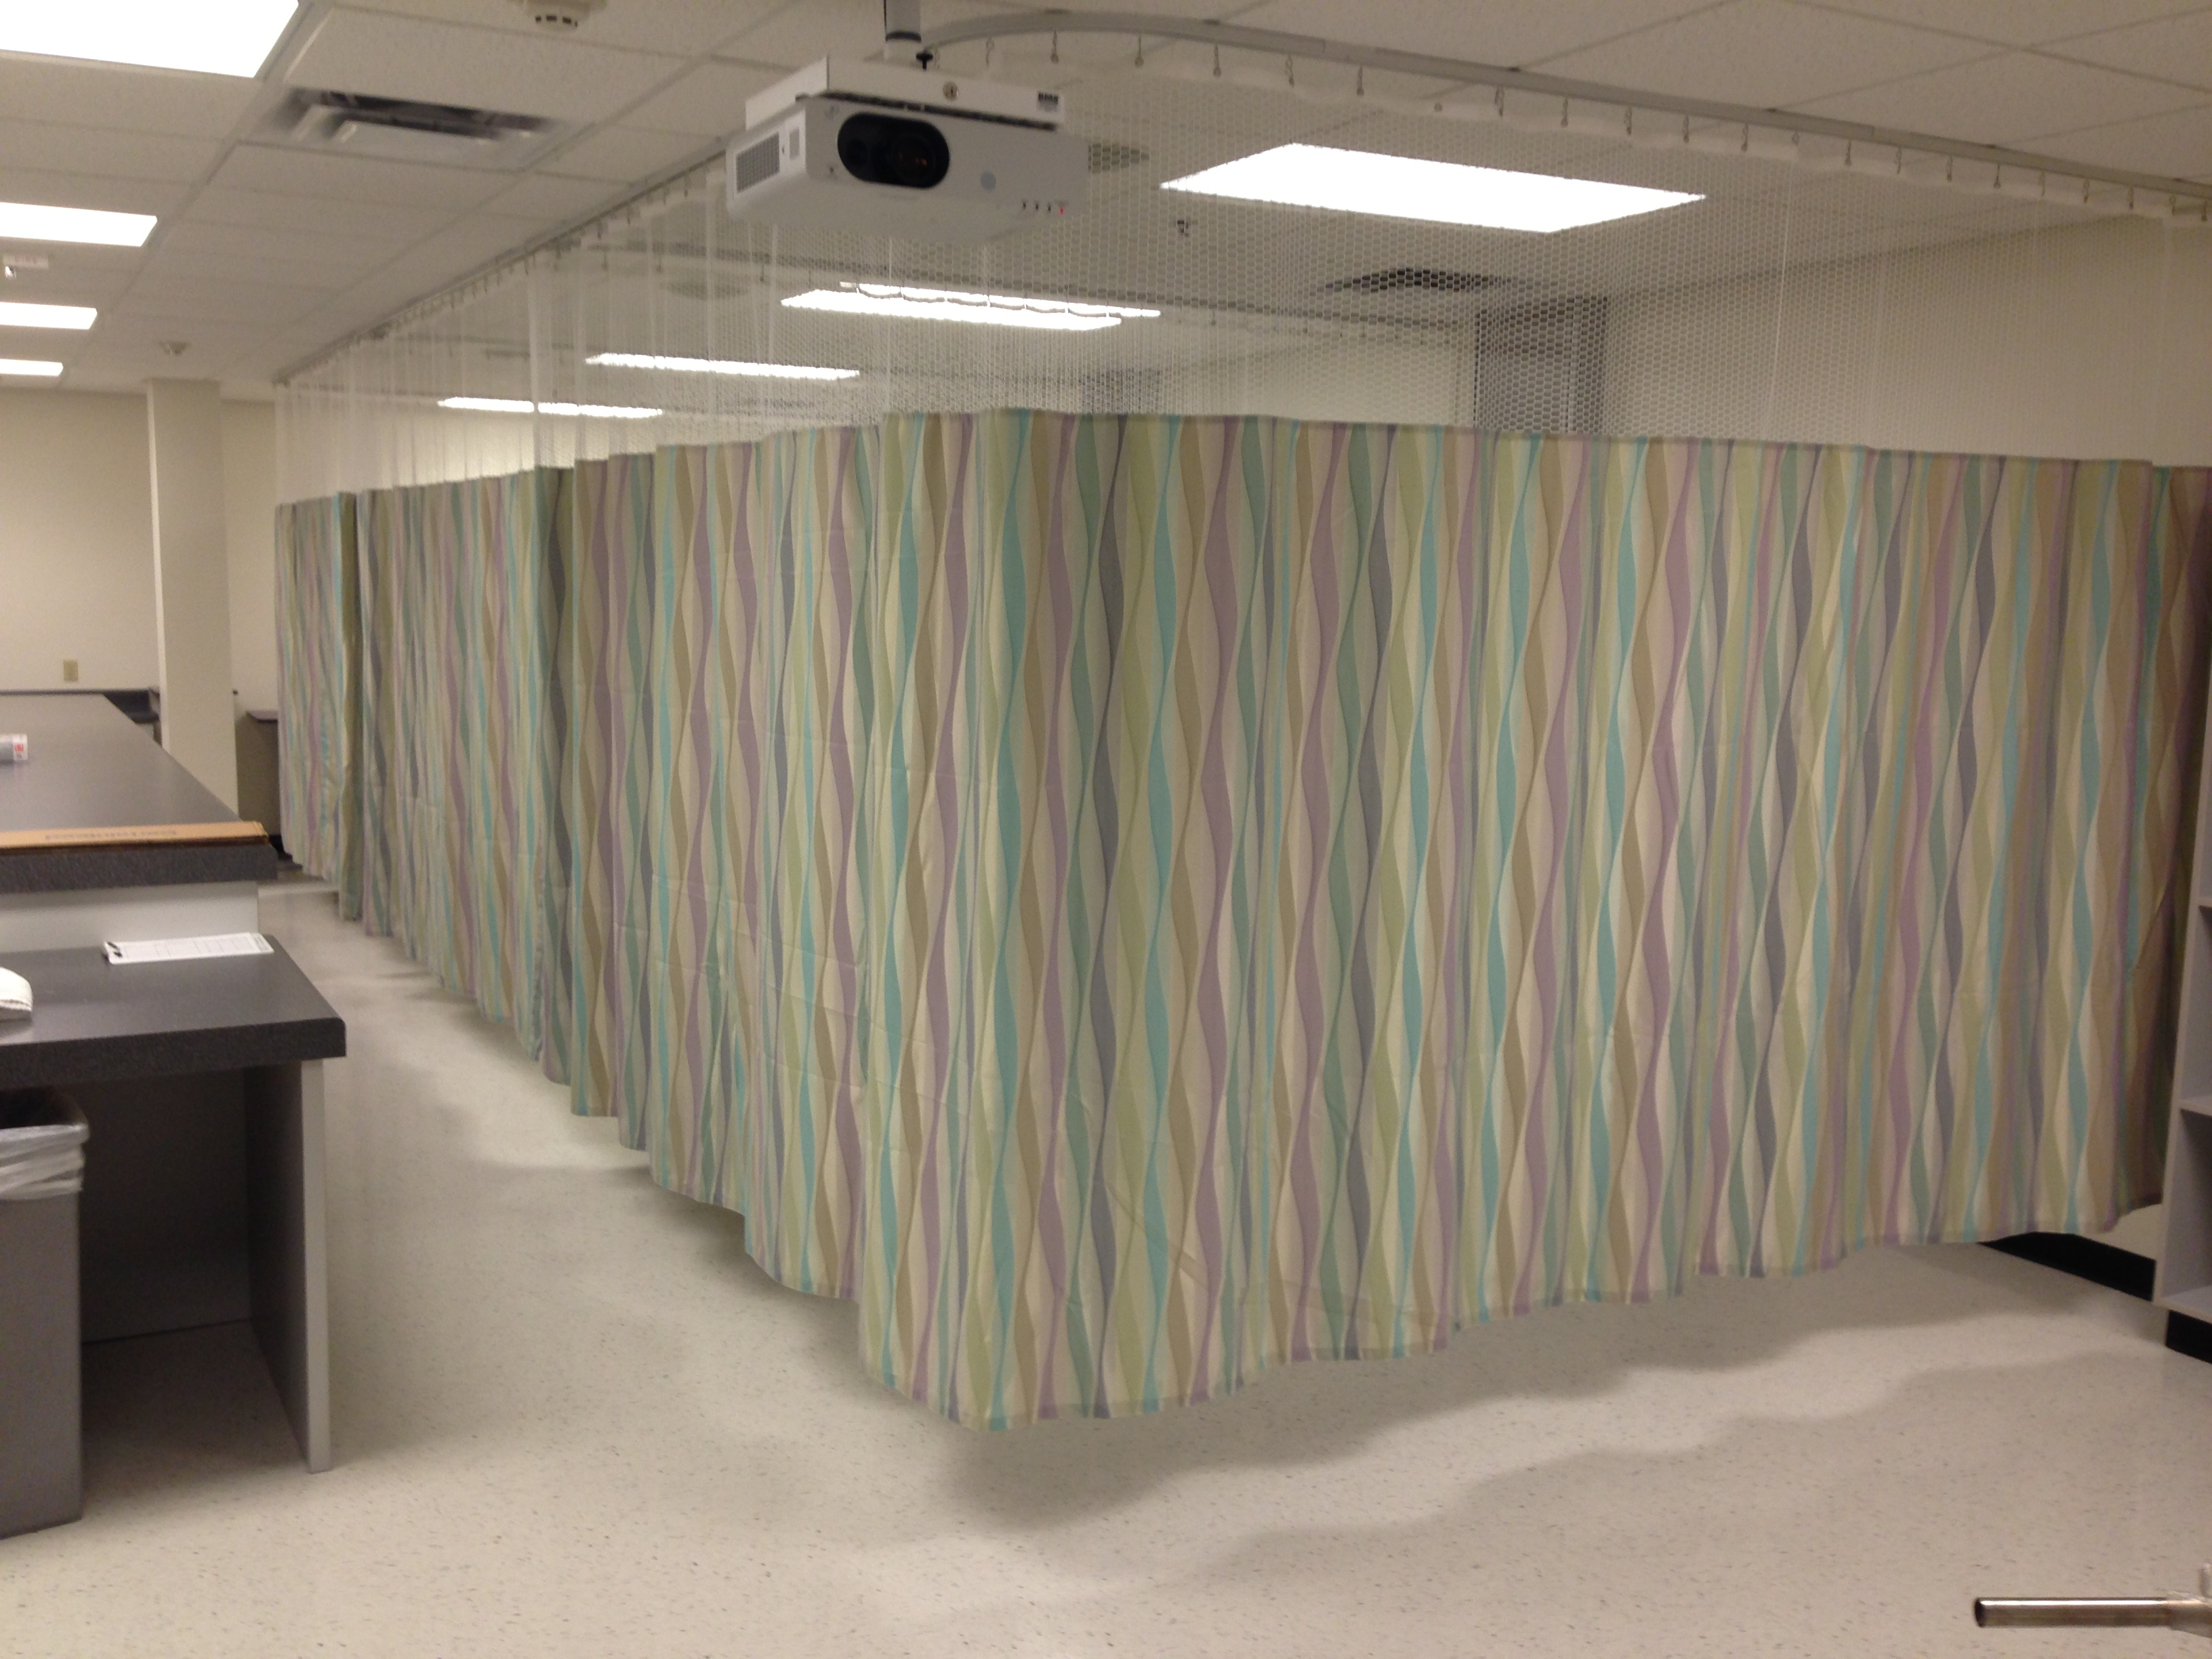 Office cubicle curtains - About Us Arizona Washroom Partitions Cubicle Track Amp Curtains Office Cubicle Curtains